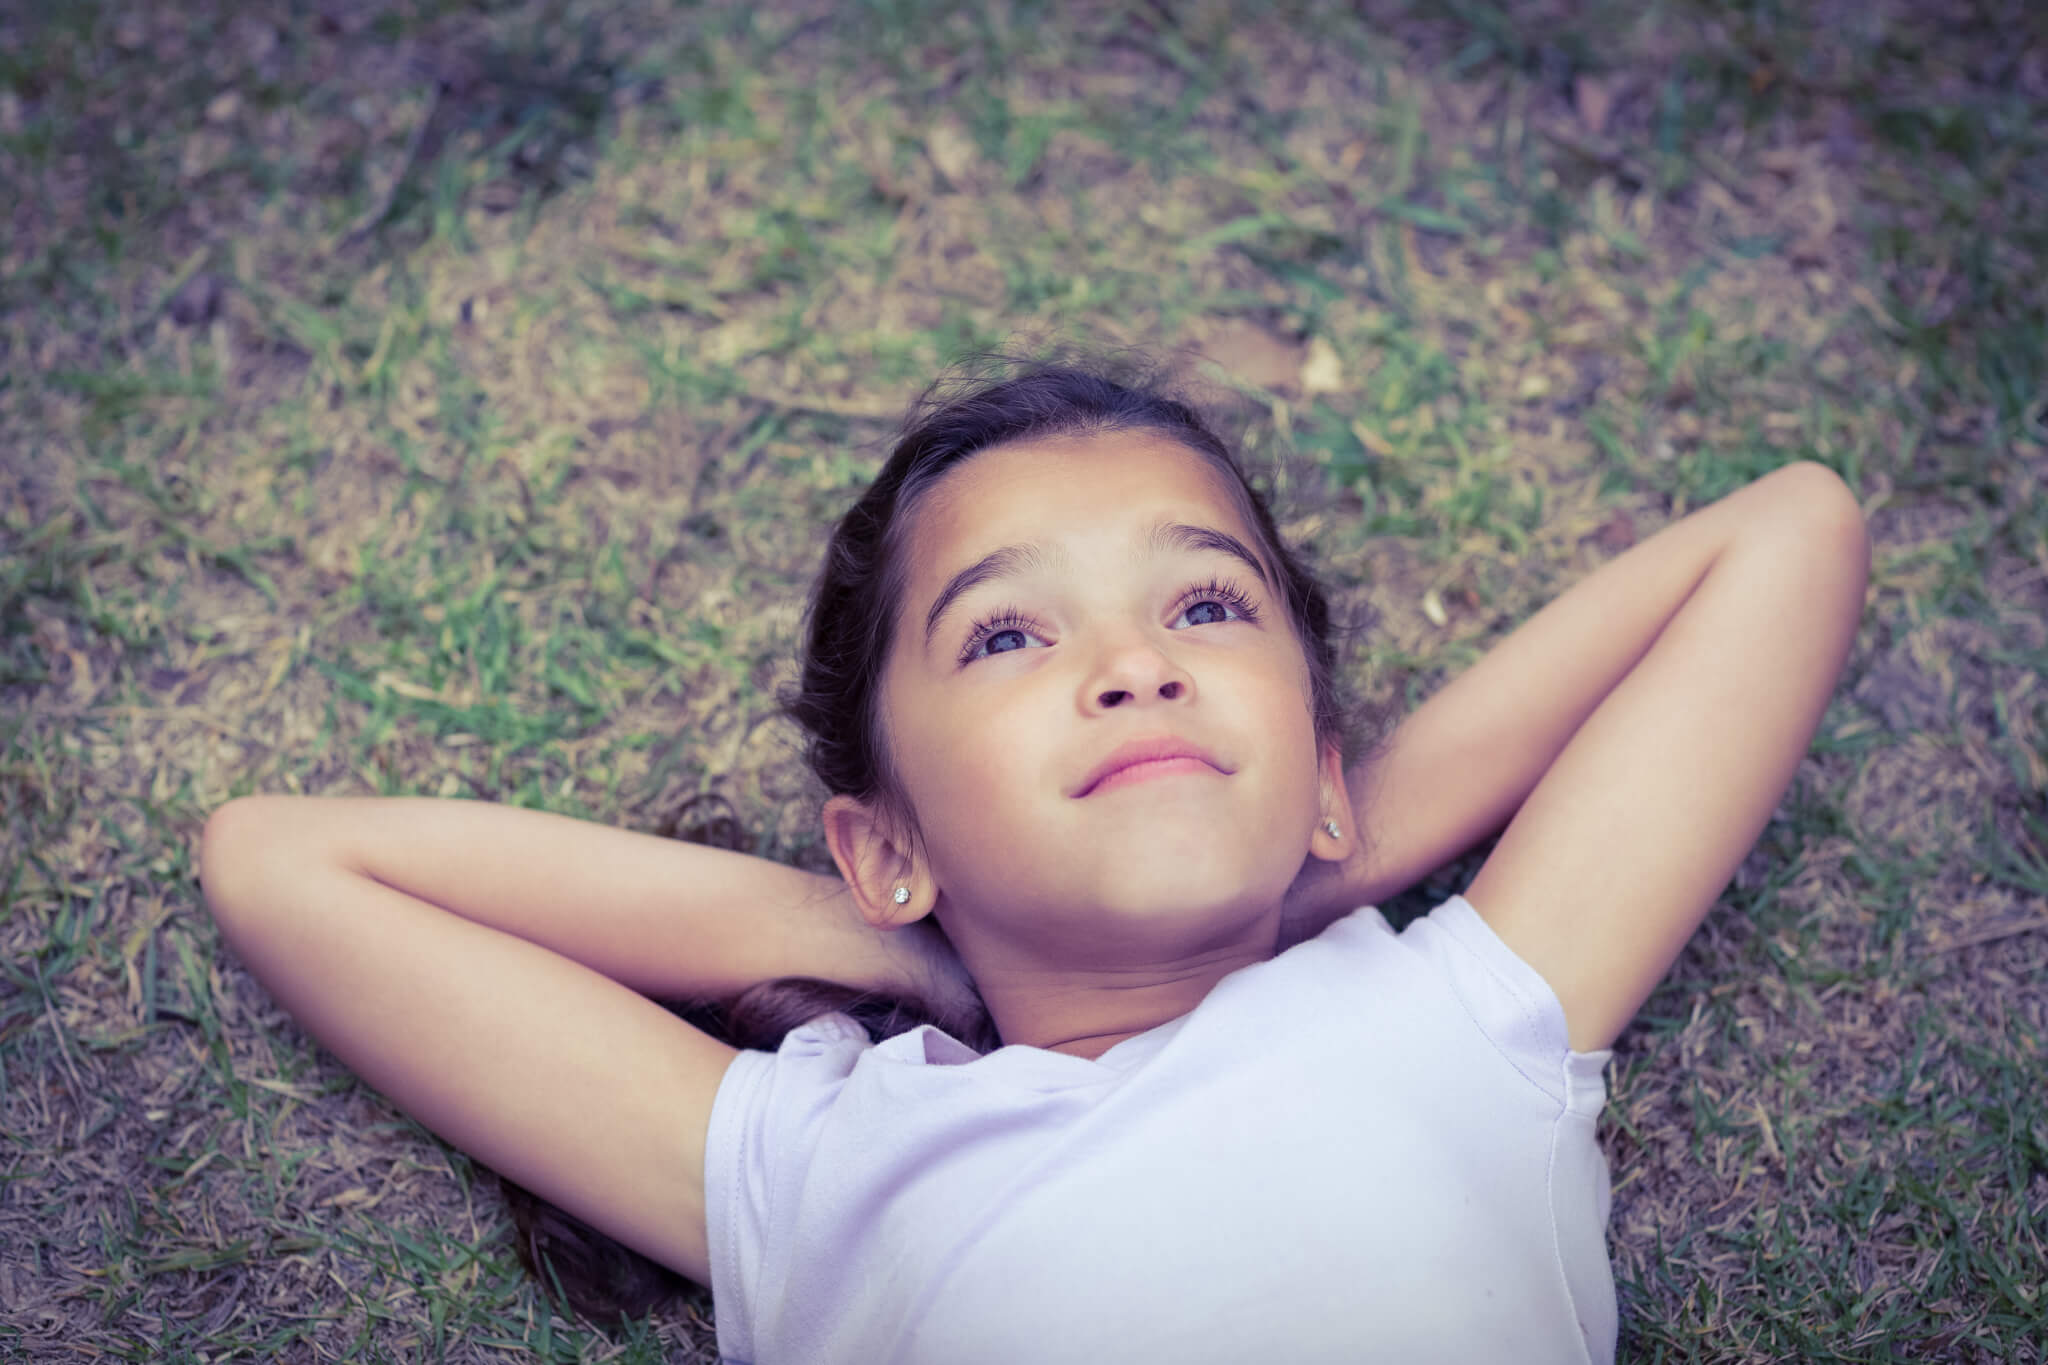 Tips for Parents to Foster Curiosity and Creativity in Children Girl Daydreaming